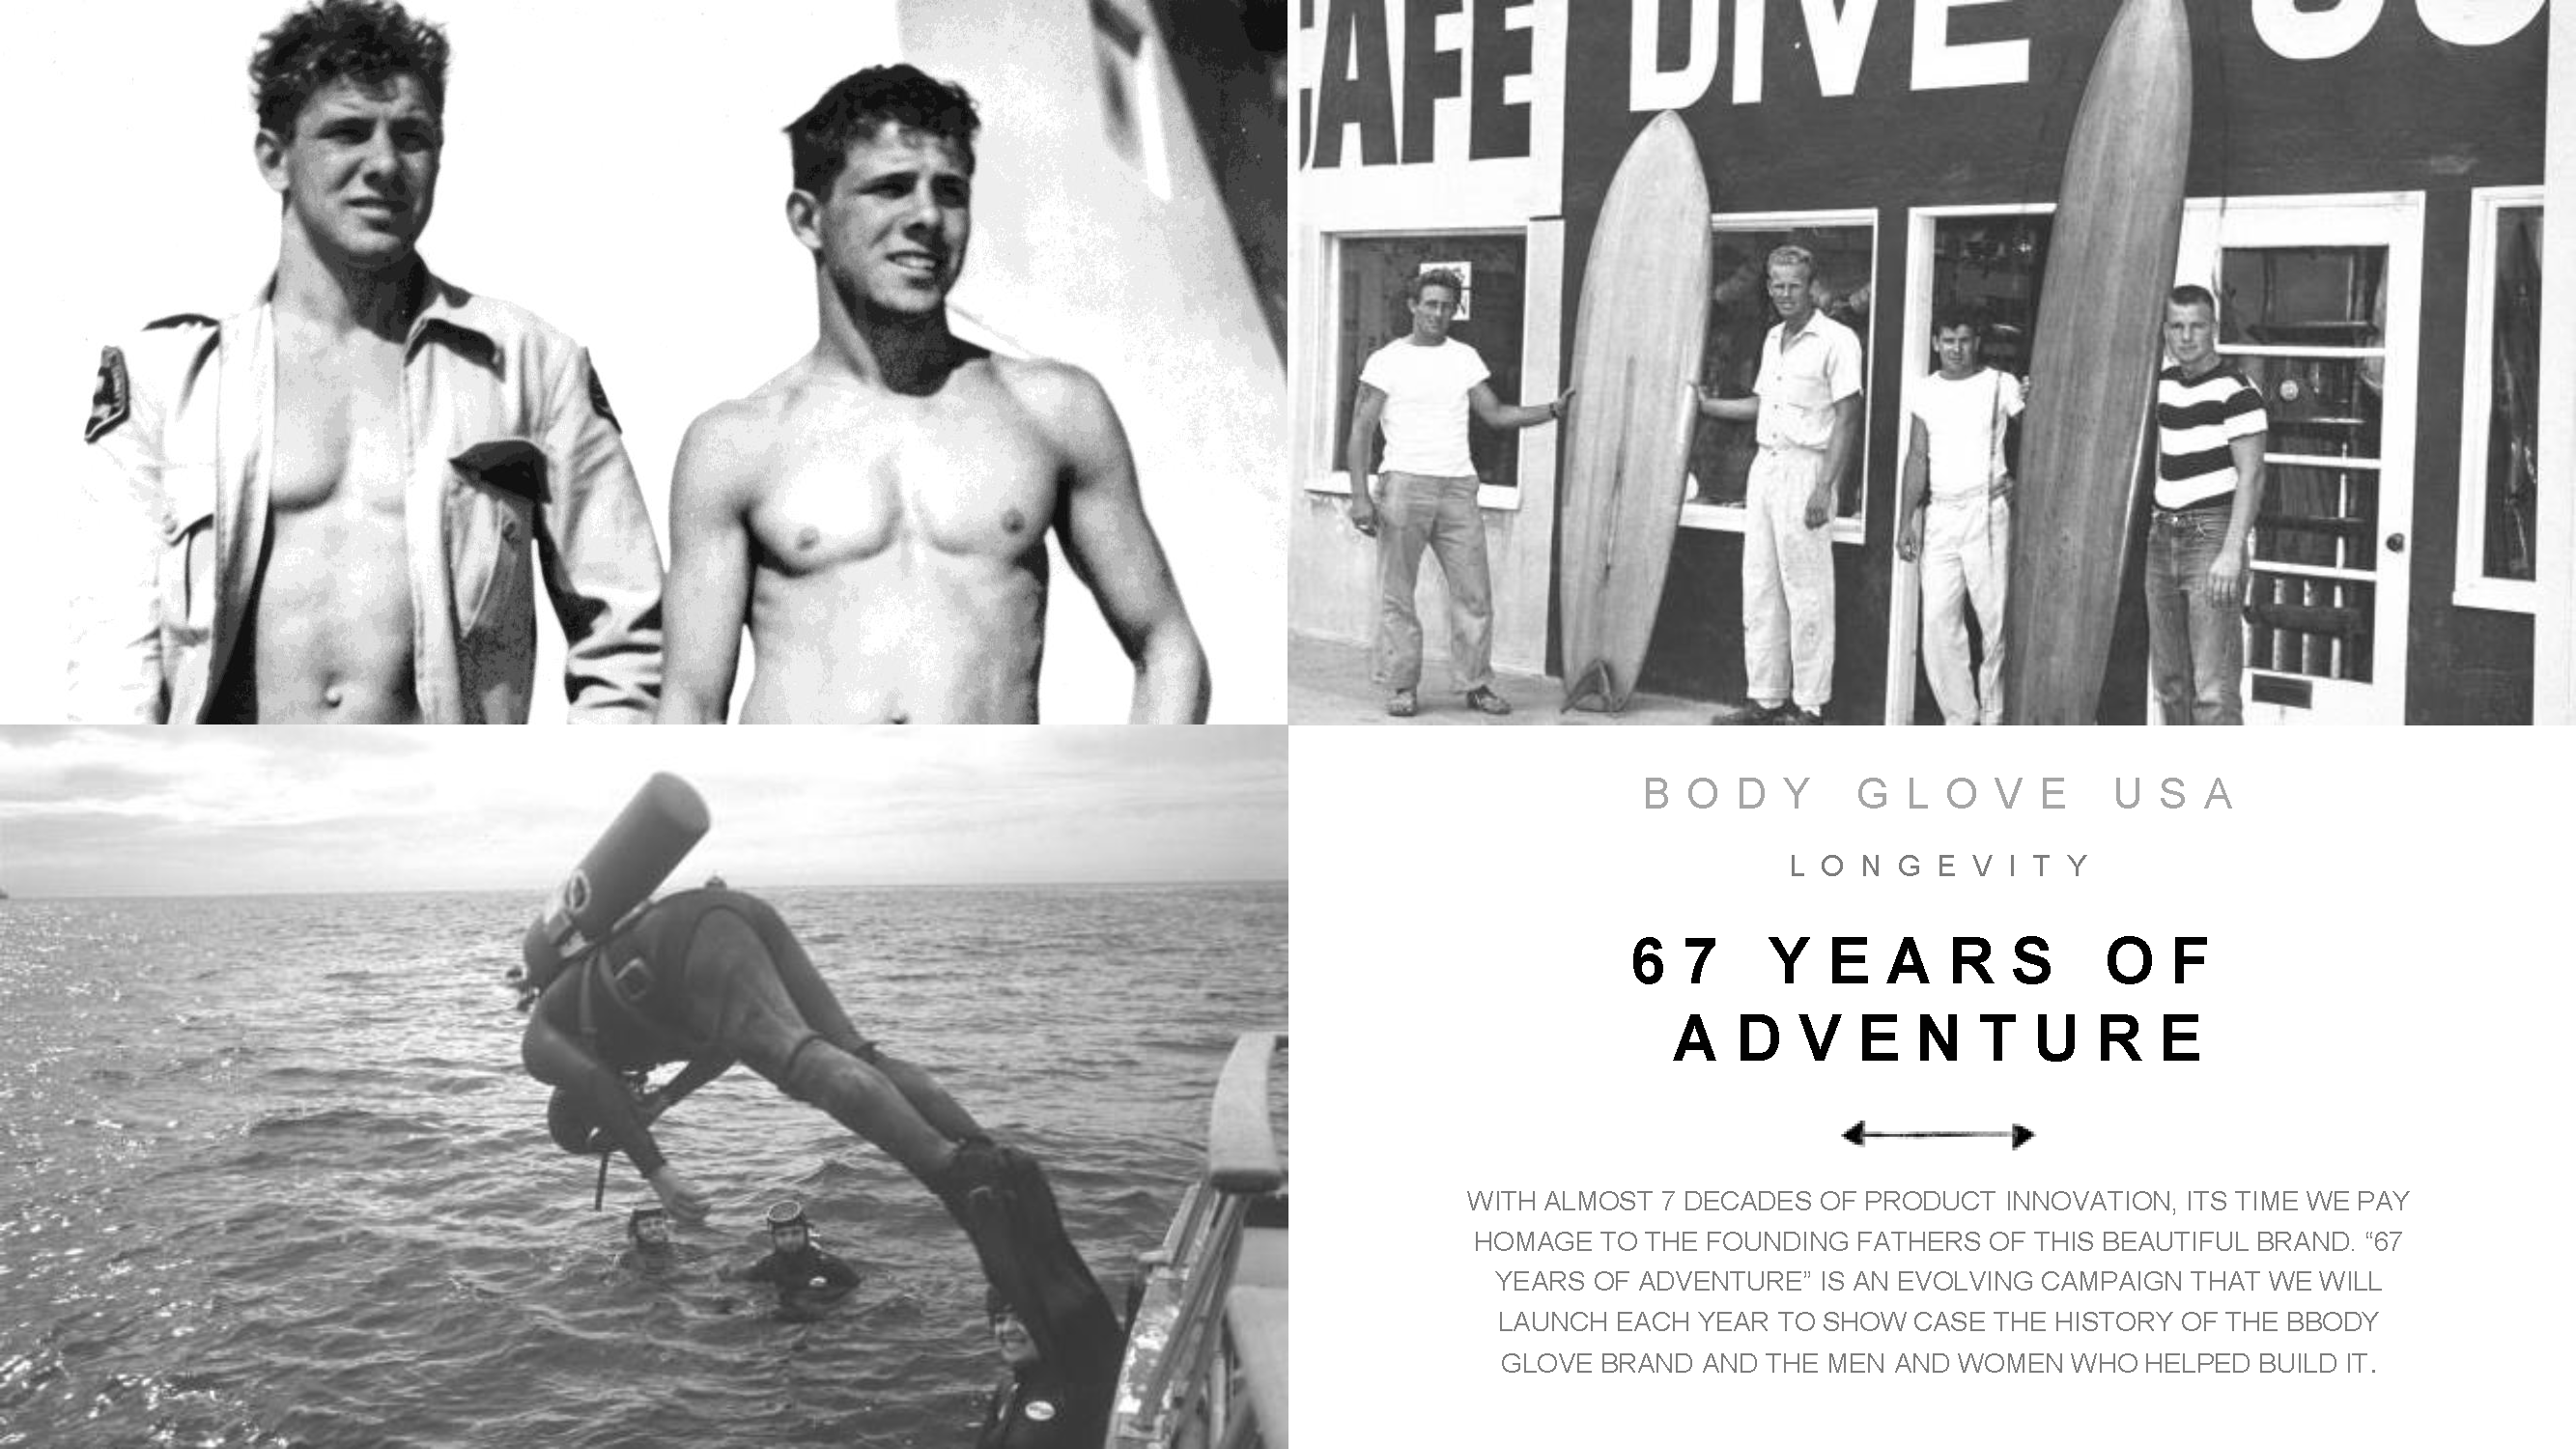 Inspired by all things water, California lifeguards and watermen Bill and Bob Meistrell constructed the first functional wetsuit, the 'body glove.' Now, with decades of product innovations and the philosophy of doing what you love, Body Glove remains dedicated to supporting people's passions in and out of the water. This is our story.